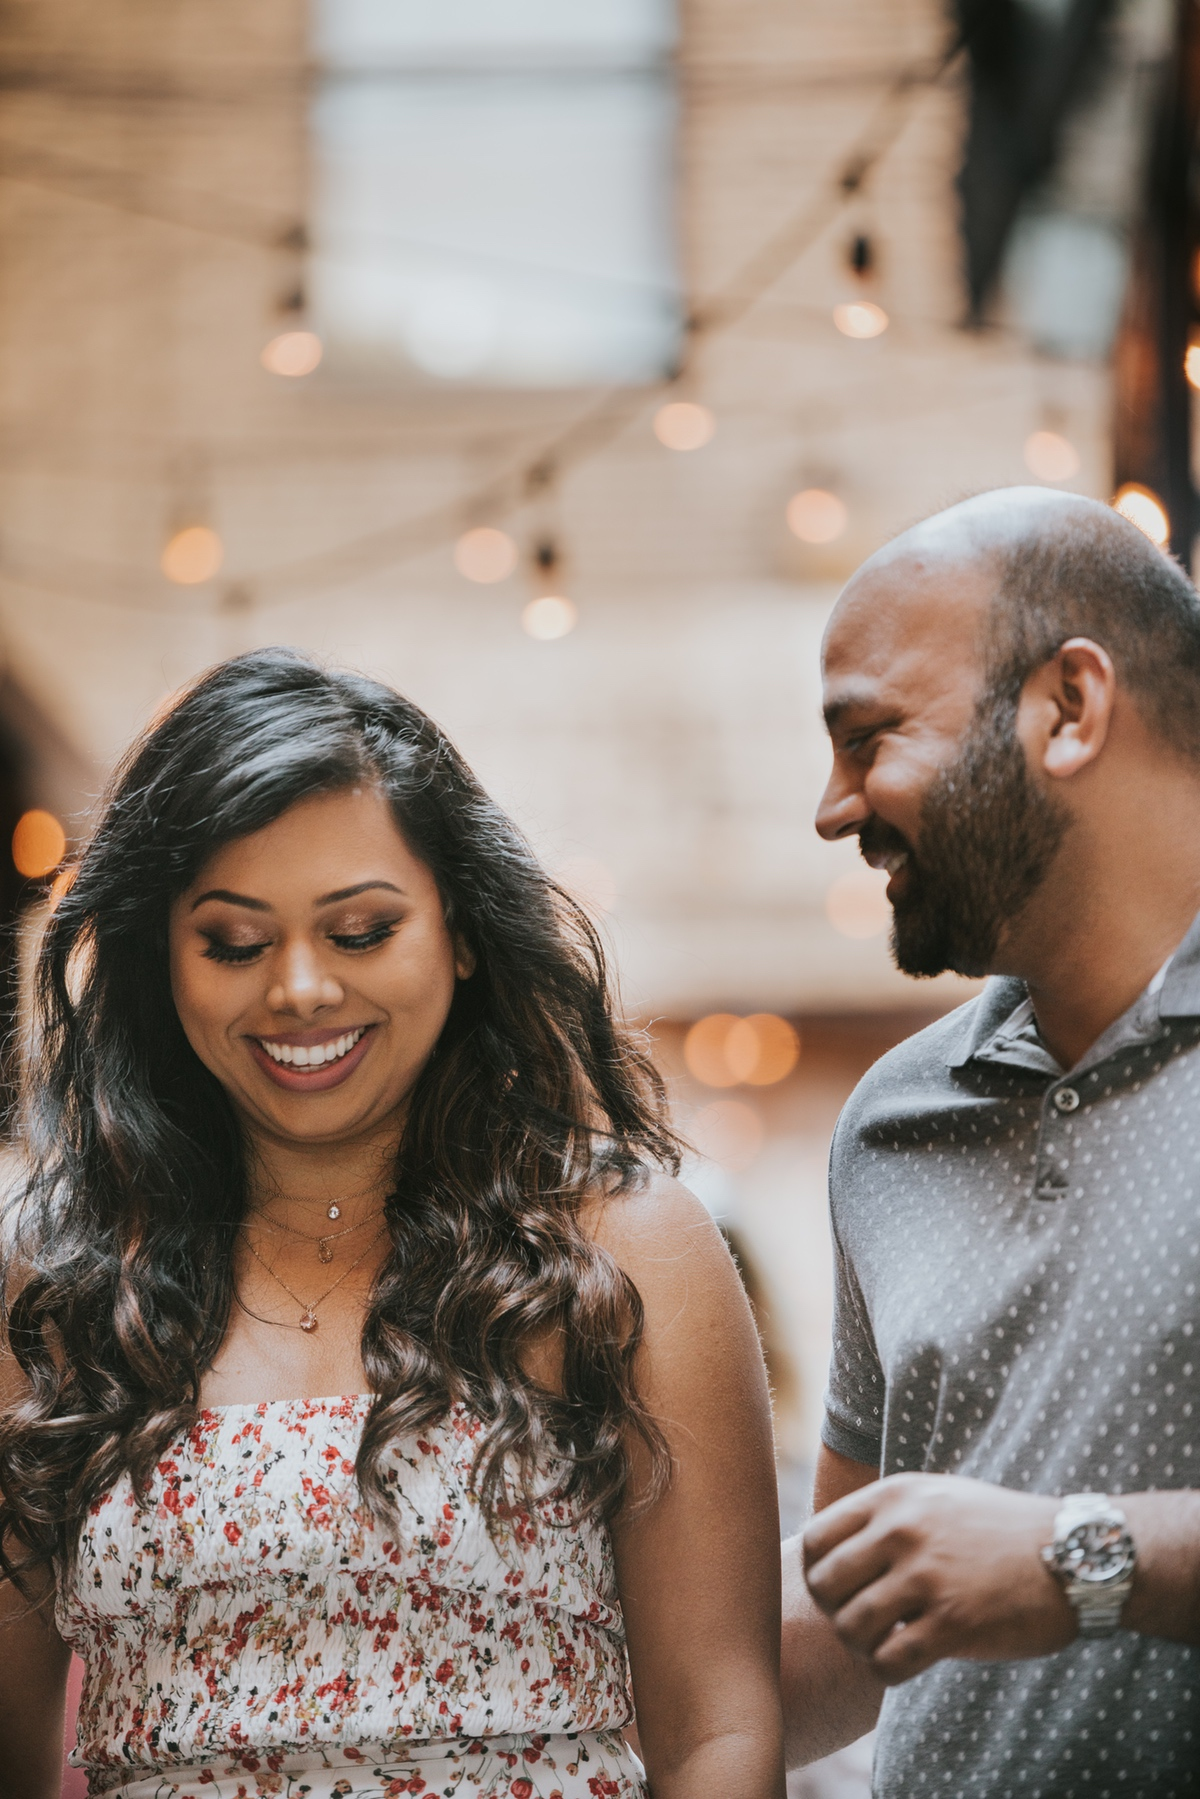 Le Cape Weddings - Engagement Session in Chicago - Brinjal-3.jpg